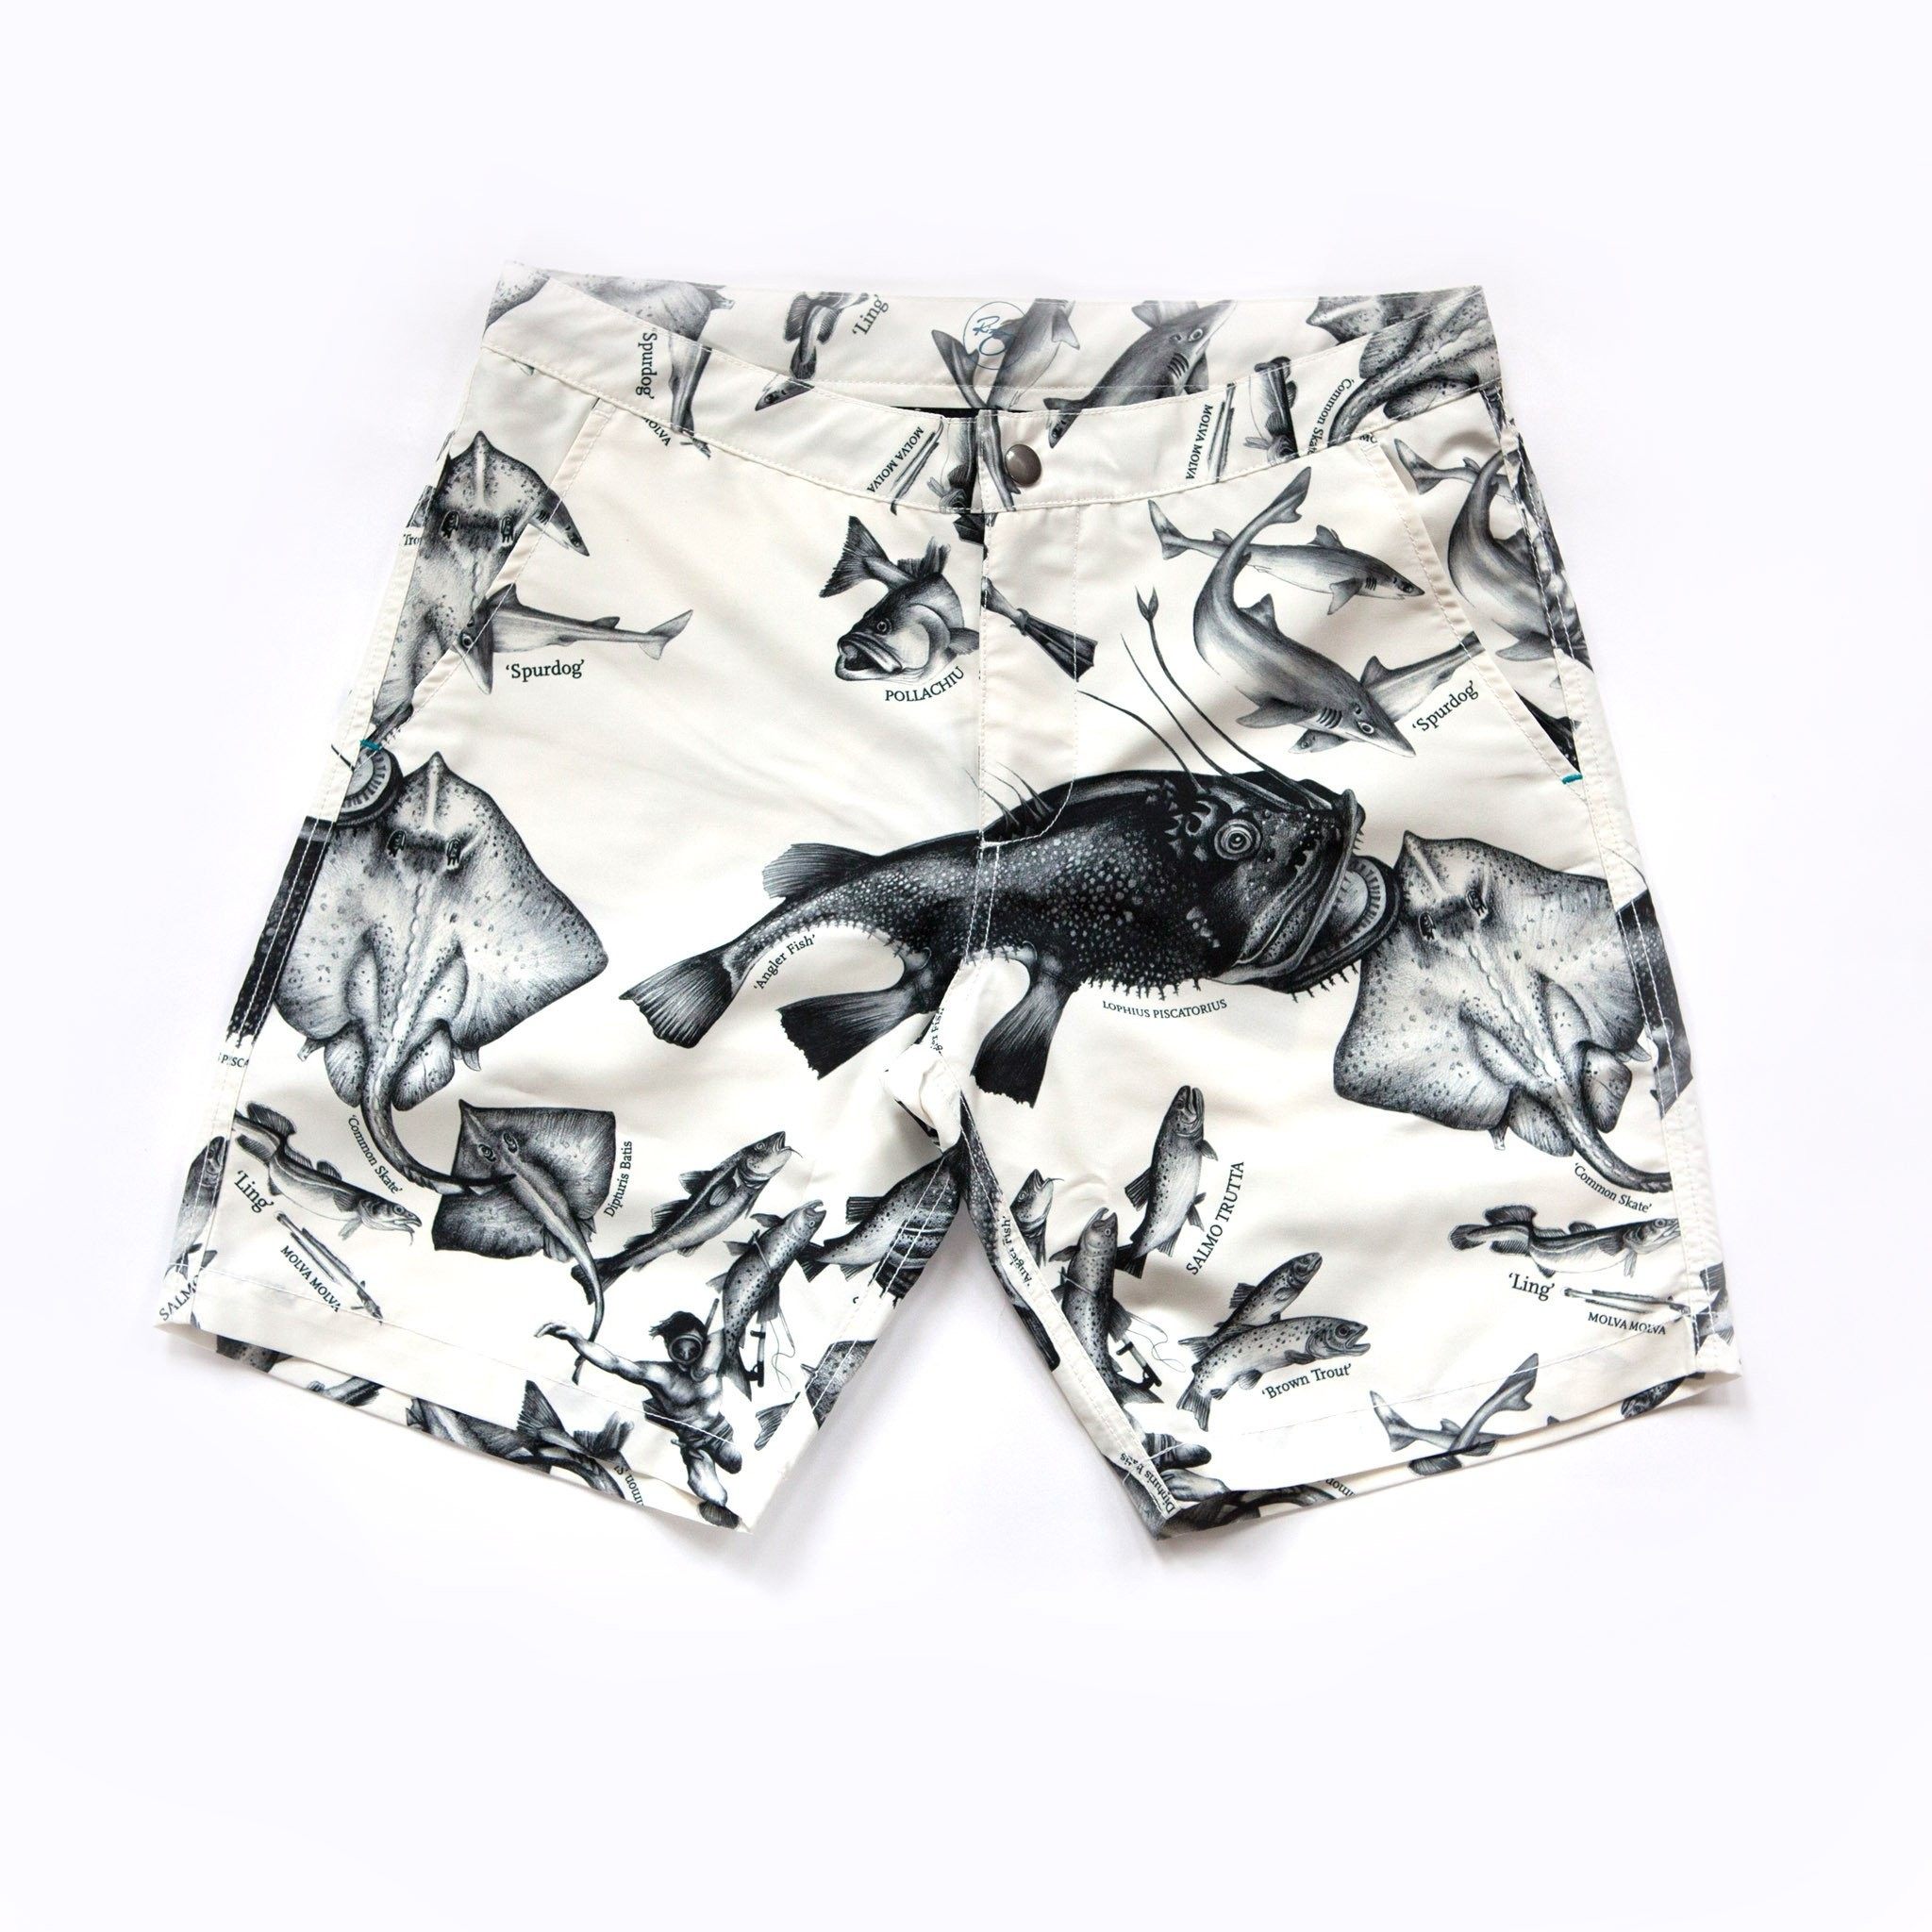 RIZ BOARDSHORTS - Braunton Endangered Fish Board Short made from recycled polyester.